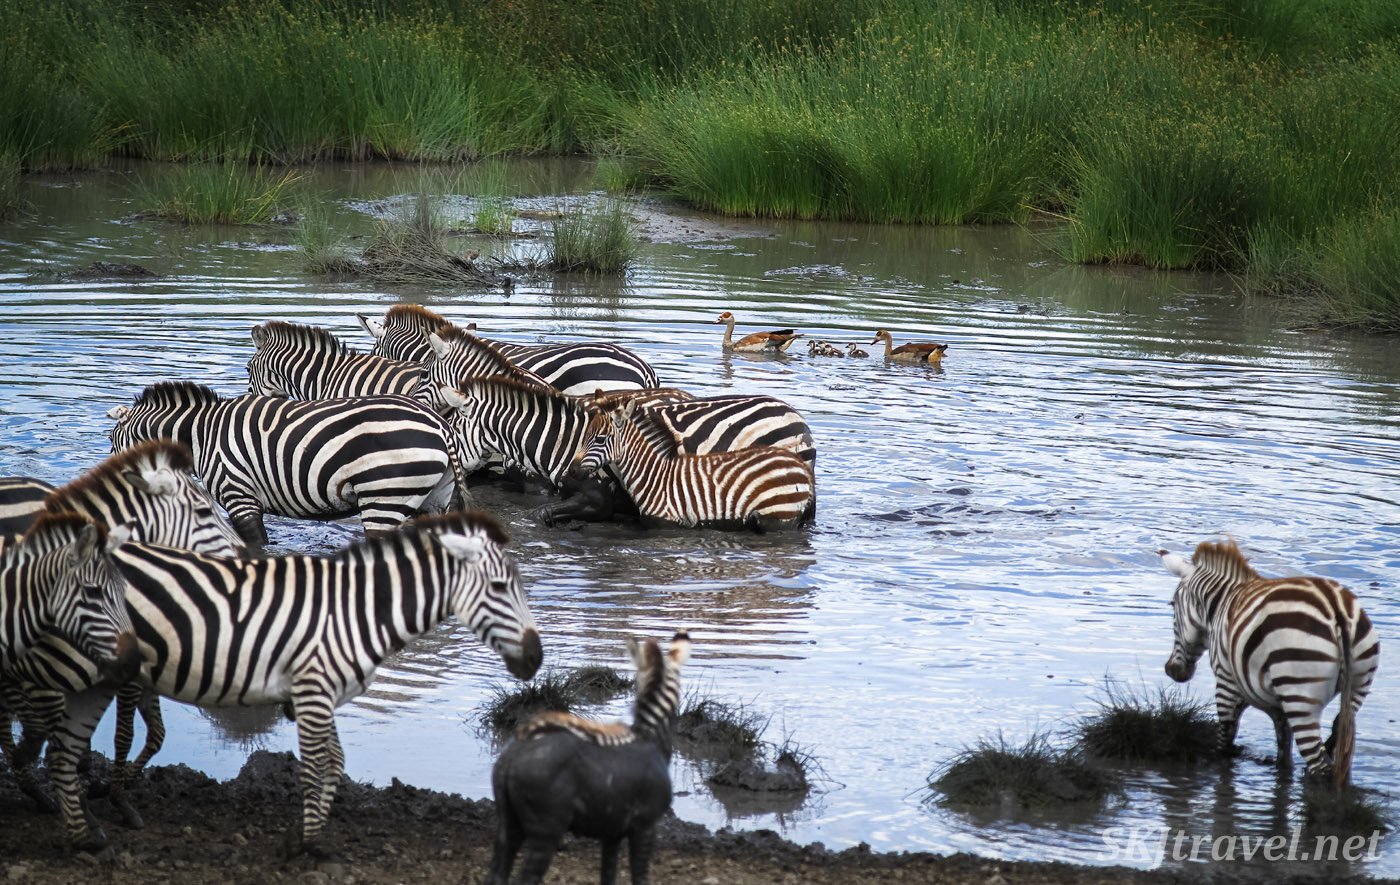 Zebras in the water, ducks swimming in the background. Baby zebra looking for its mom. Ndutu, Tanzania.